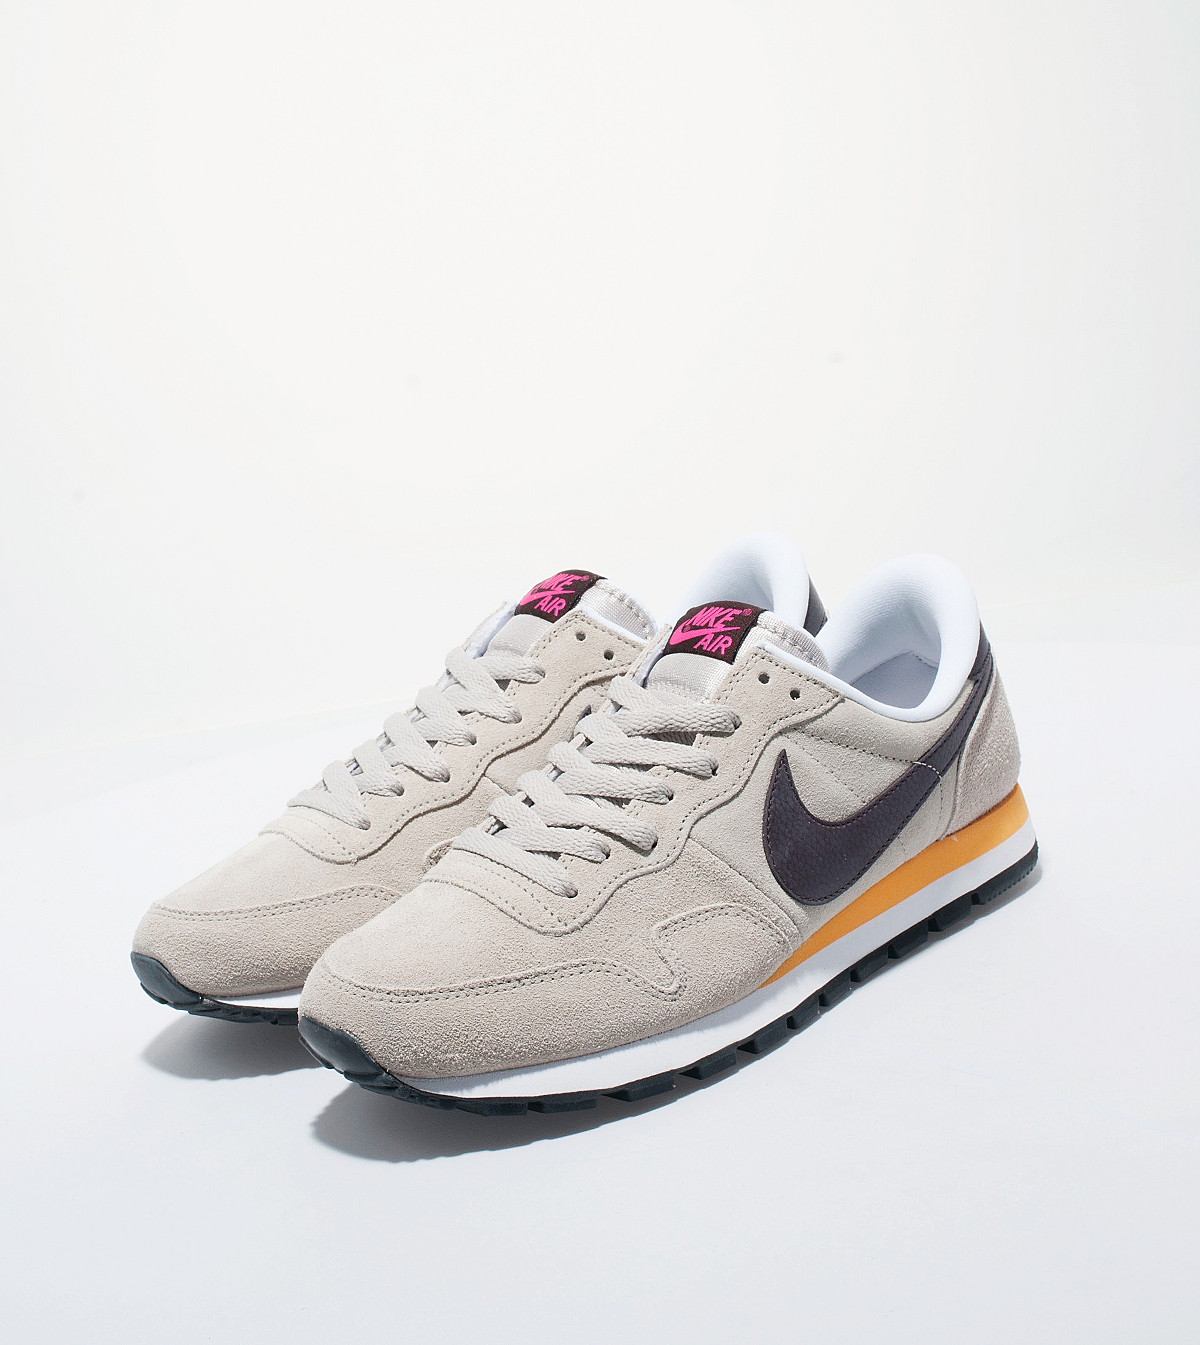 492c1abb14c Nike Air Pegasus  83 - Grey Yellow-Pink